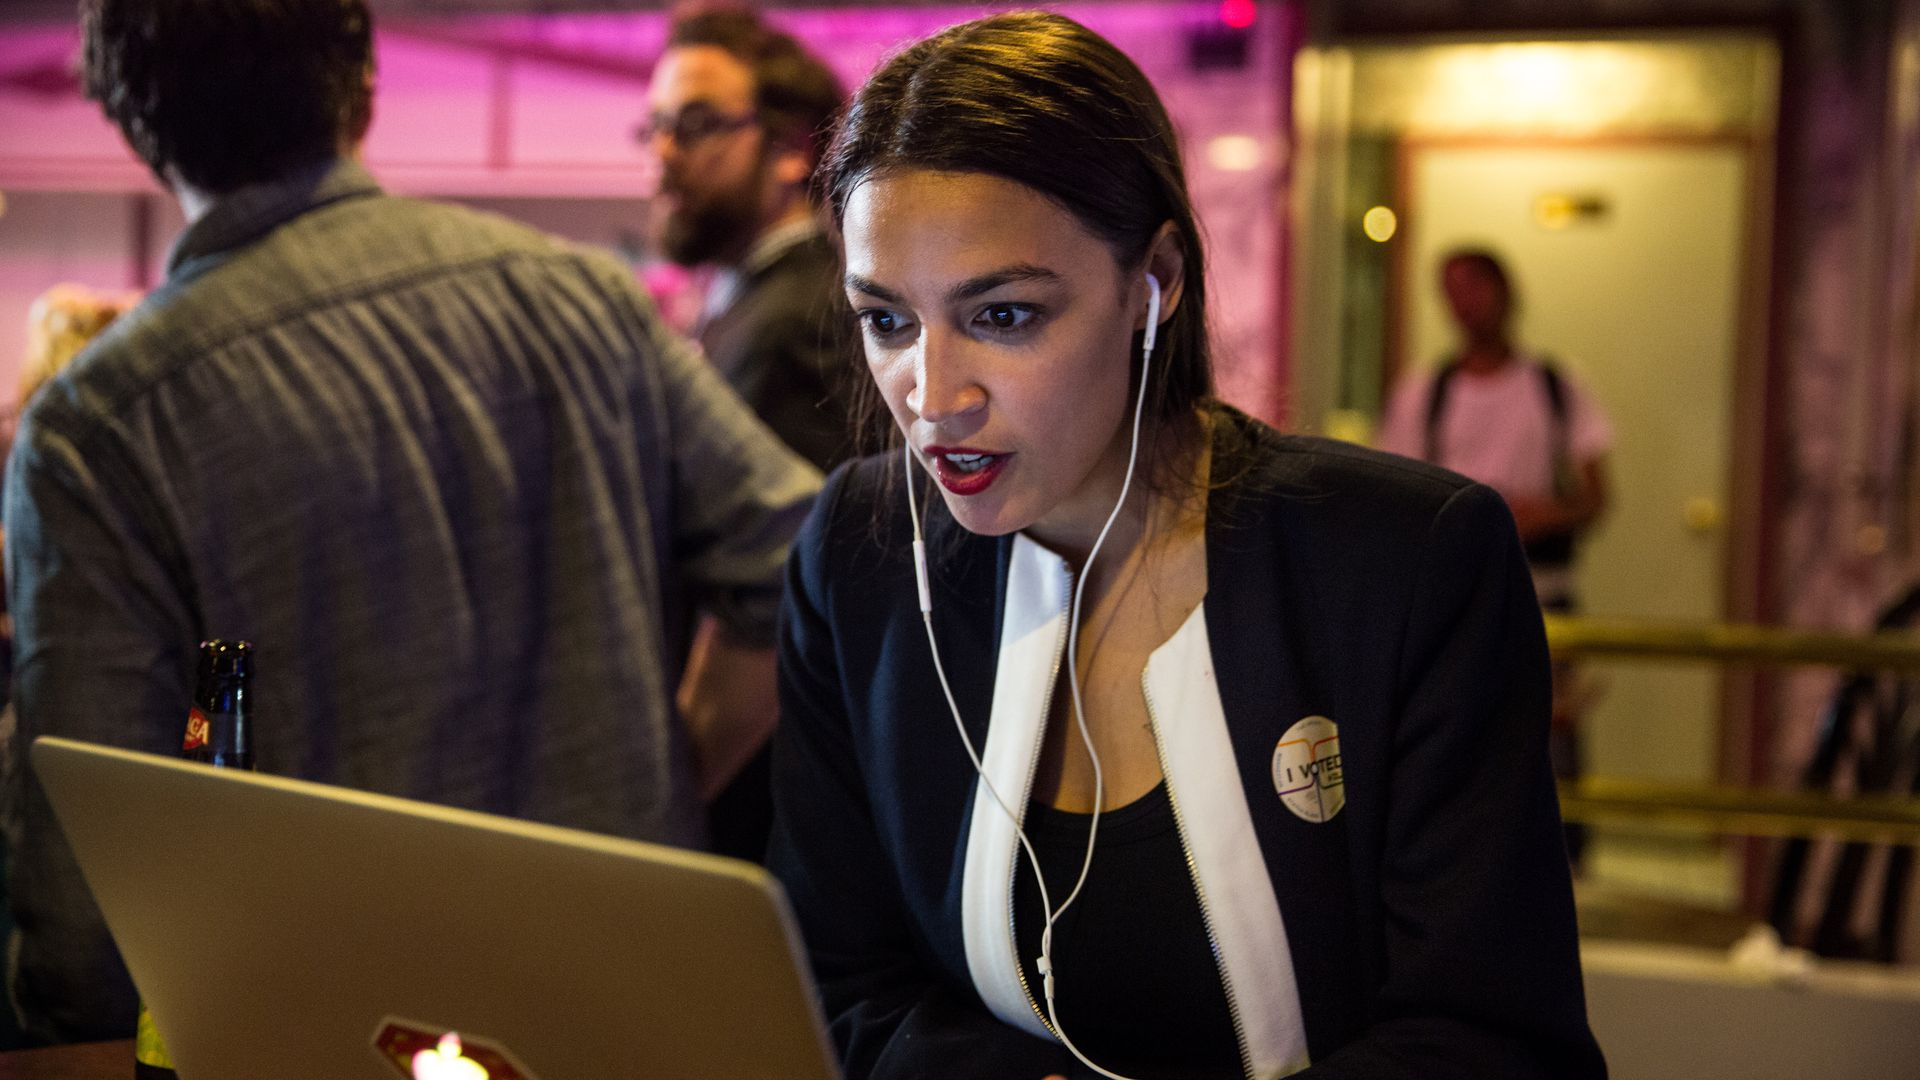 Alexandria Ocasio-Cortez looking at a laptop.